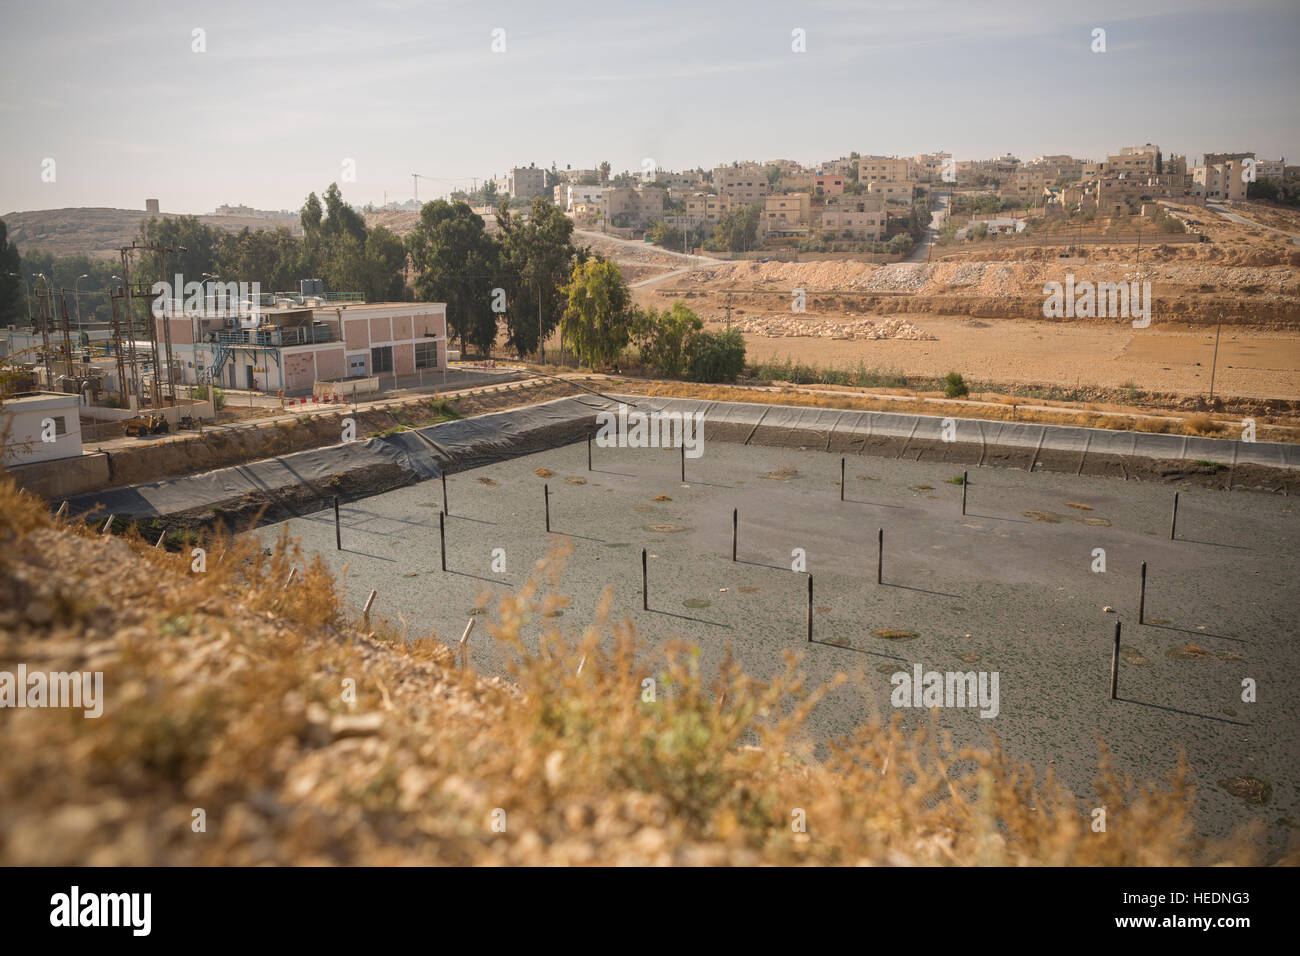 Water sewage pumping station in Zarqa, Jordan. - Stock Image